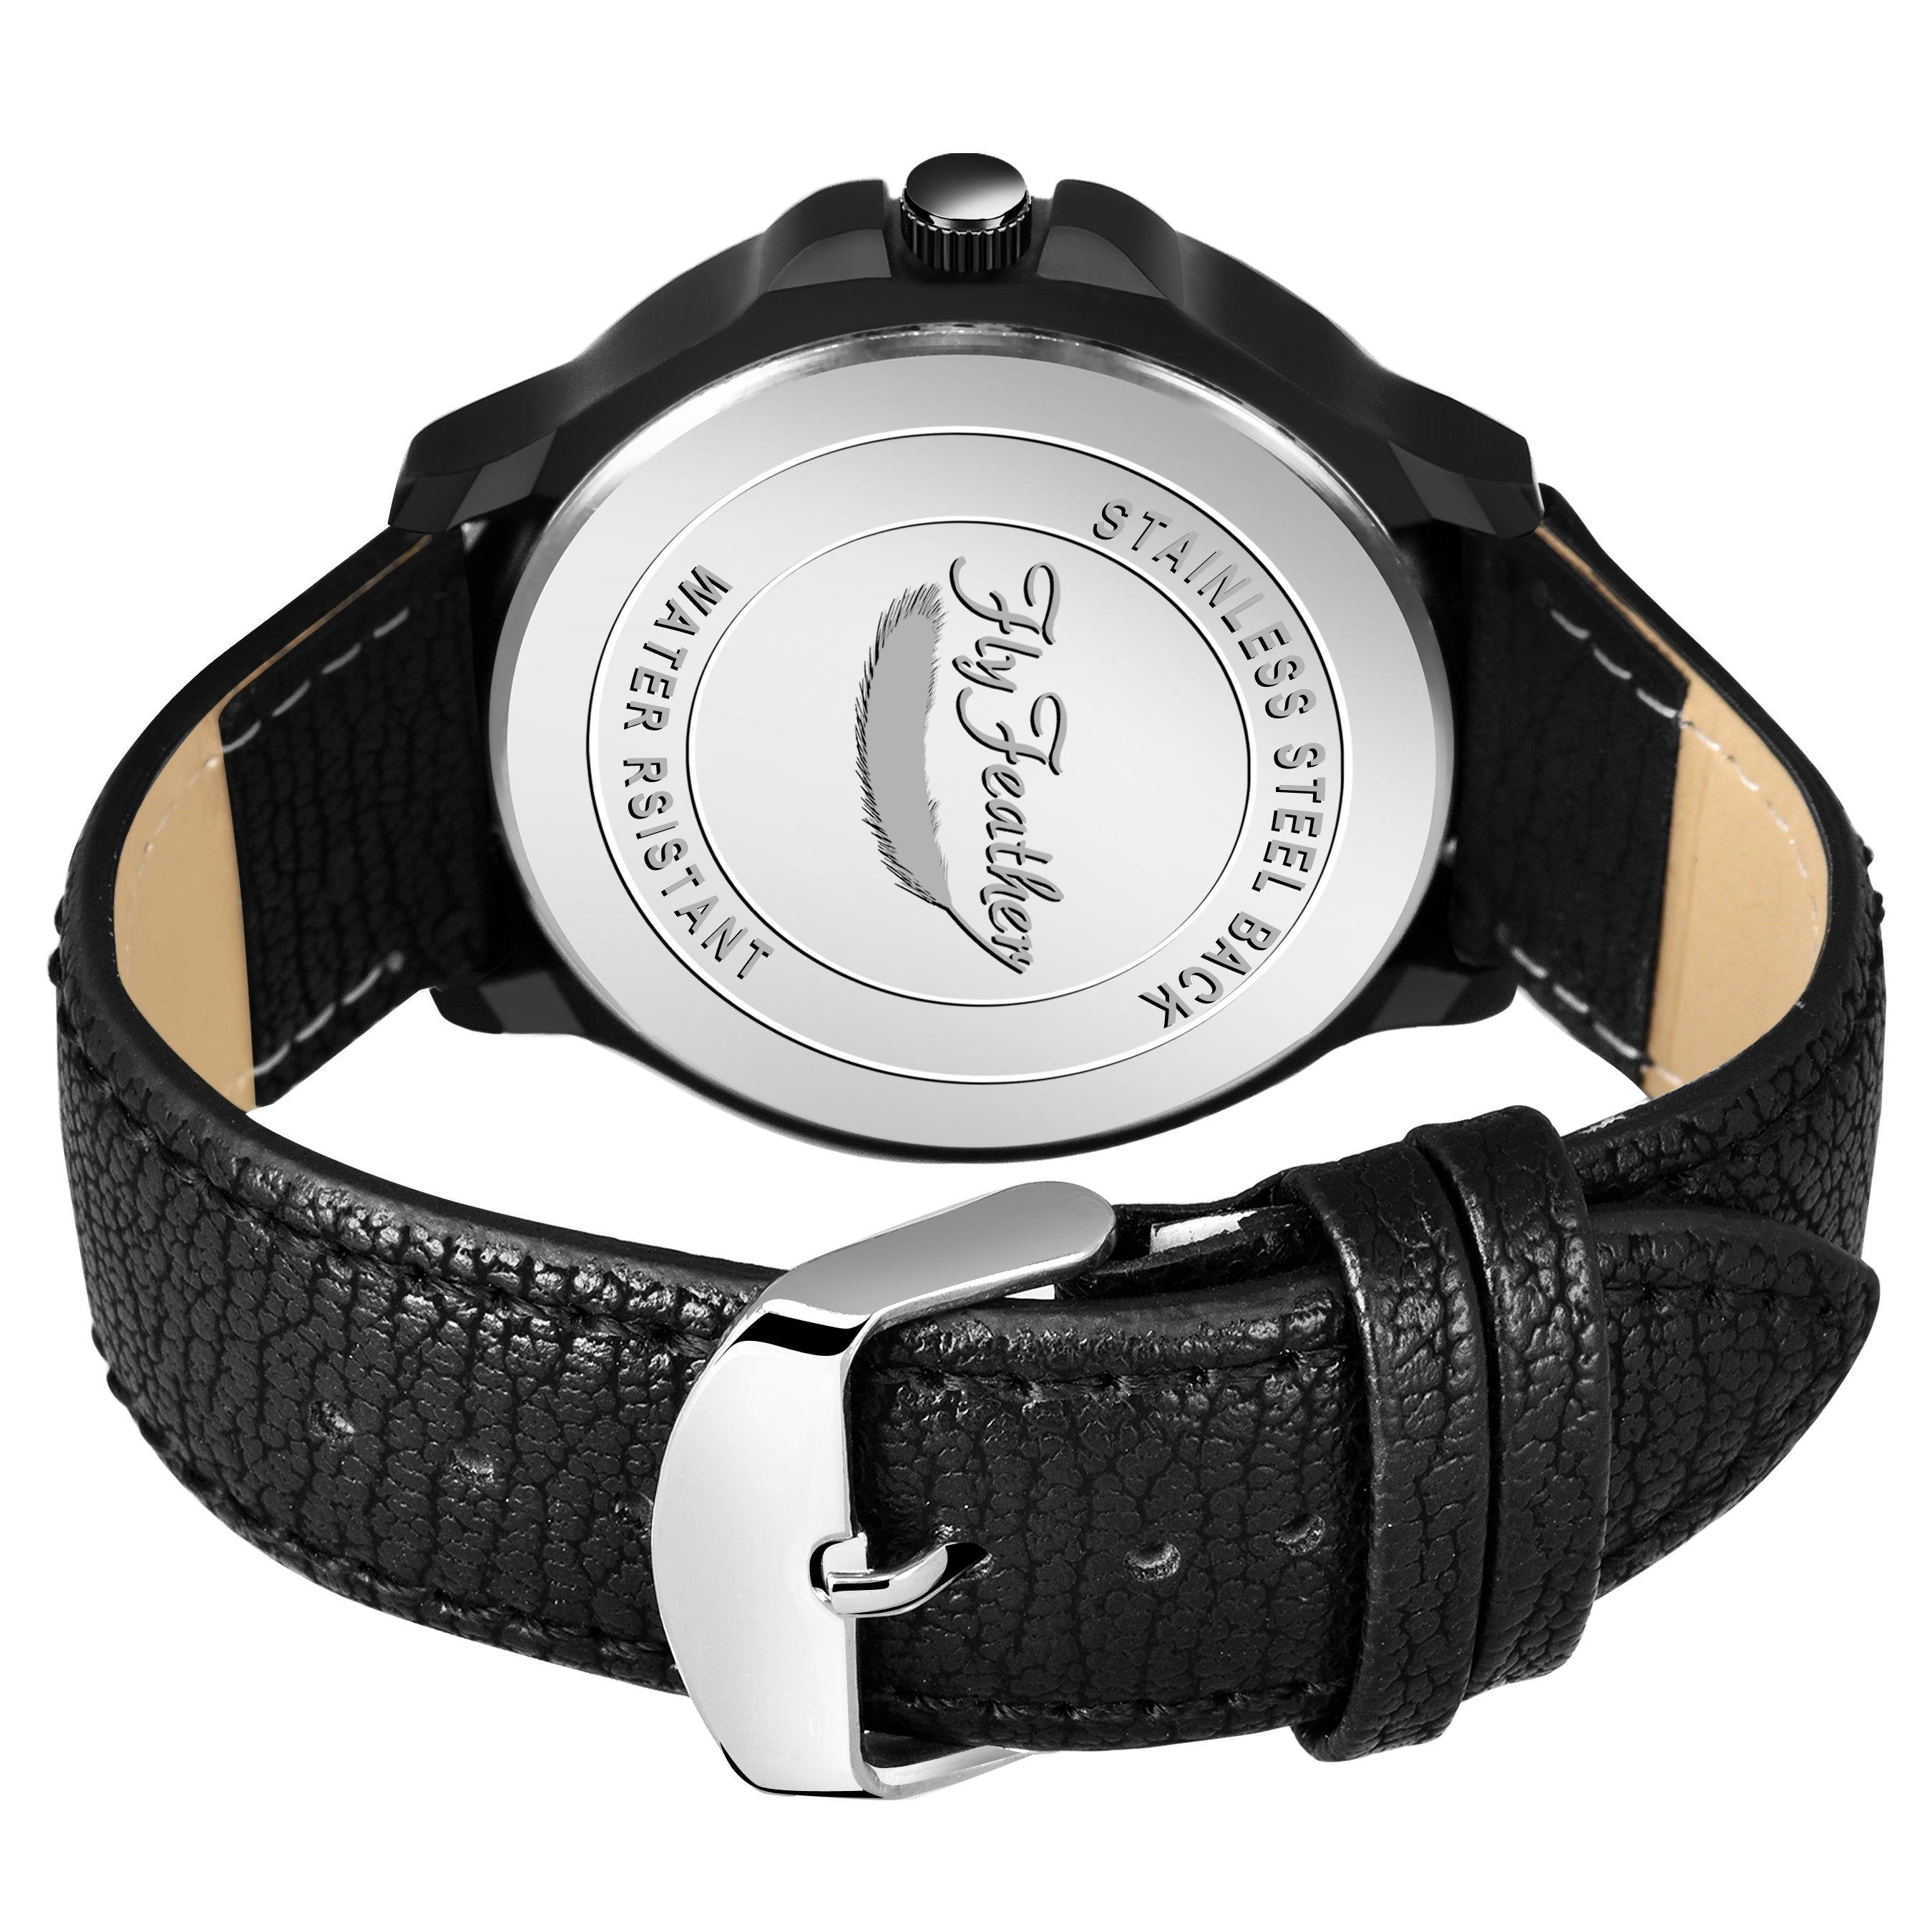 Fly Feather Unique & Premium Analogue Watch with black Dial Leather Strap (Watch 13) - Shopping With Deals